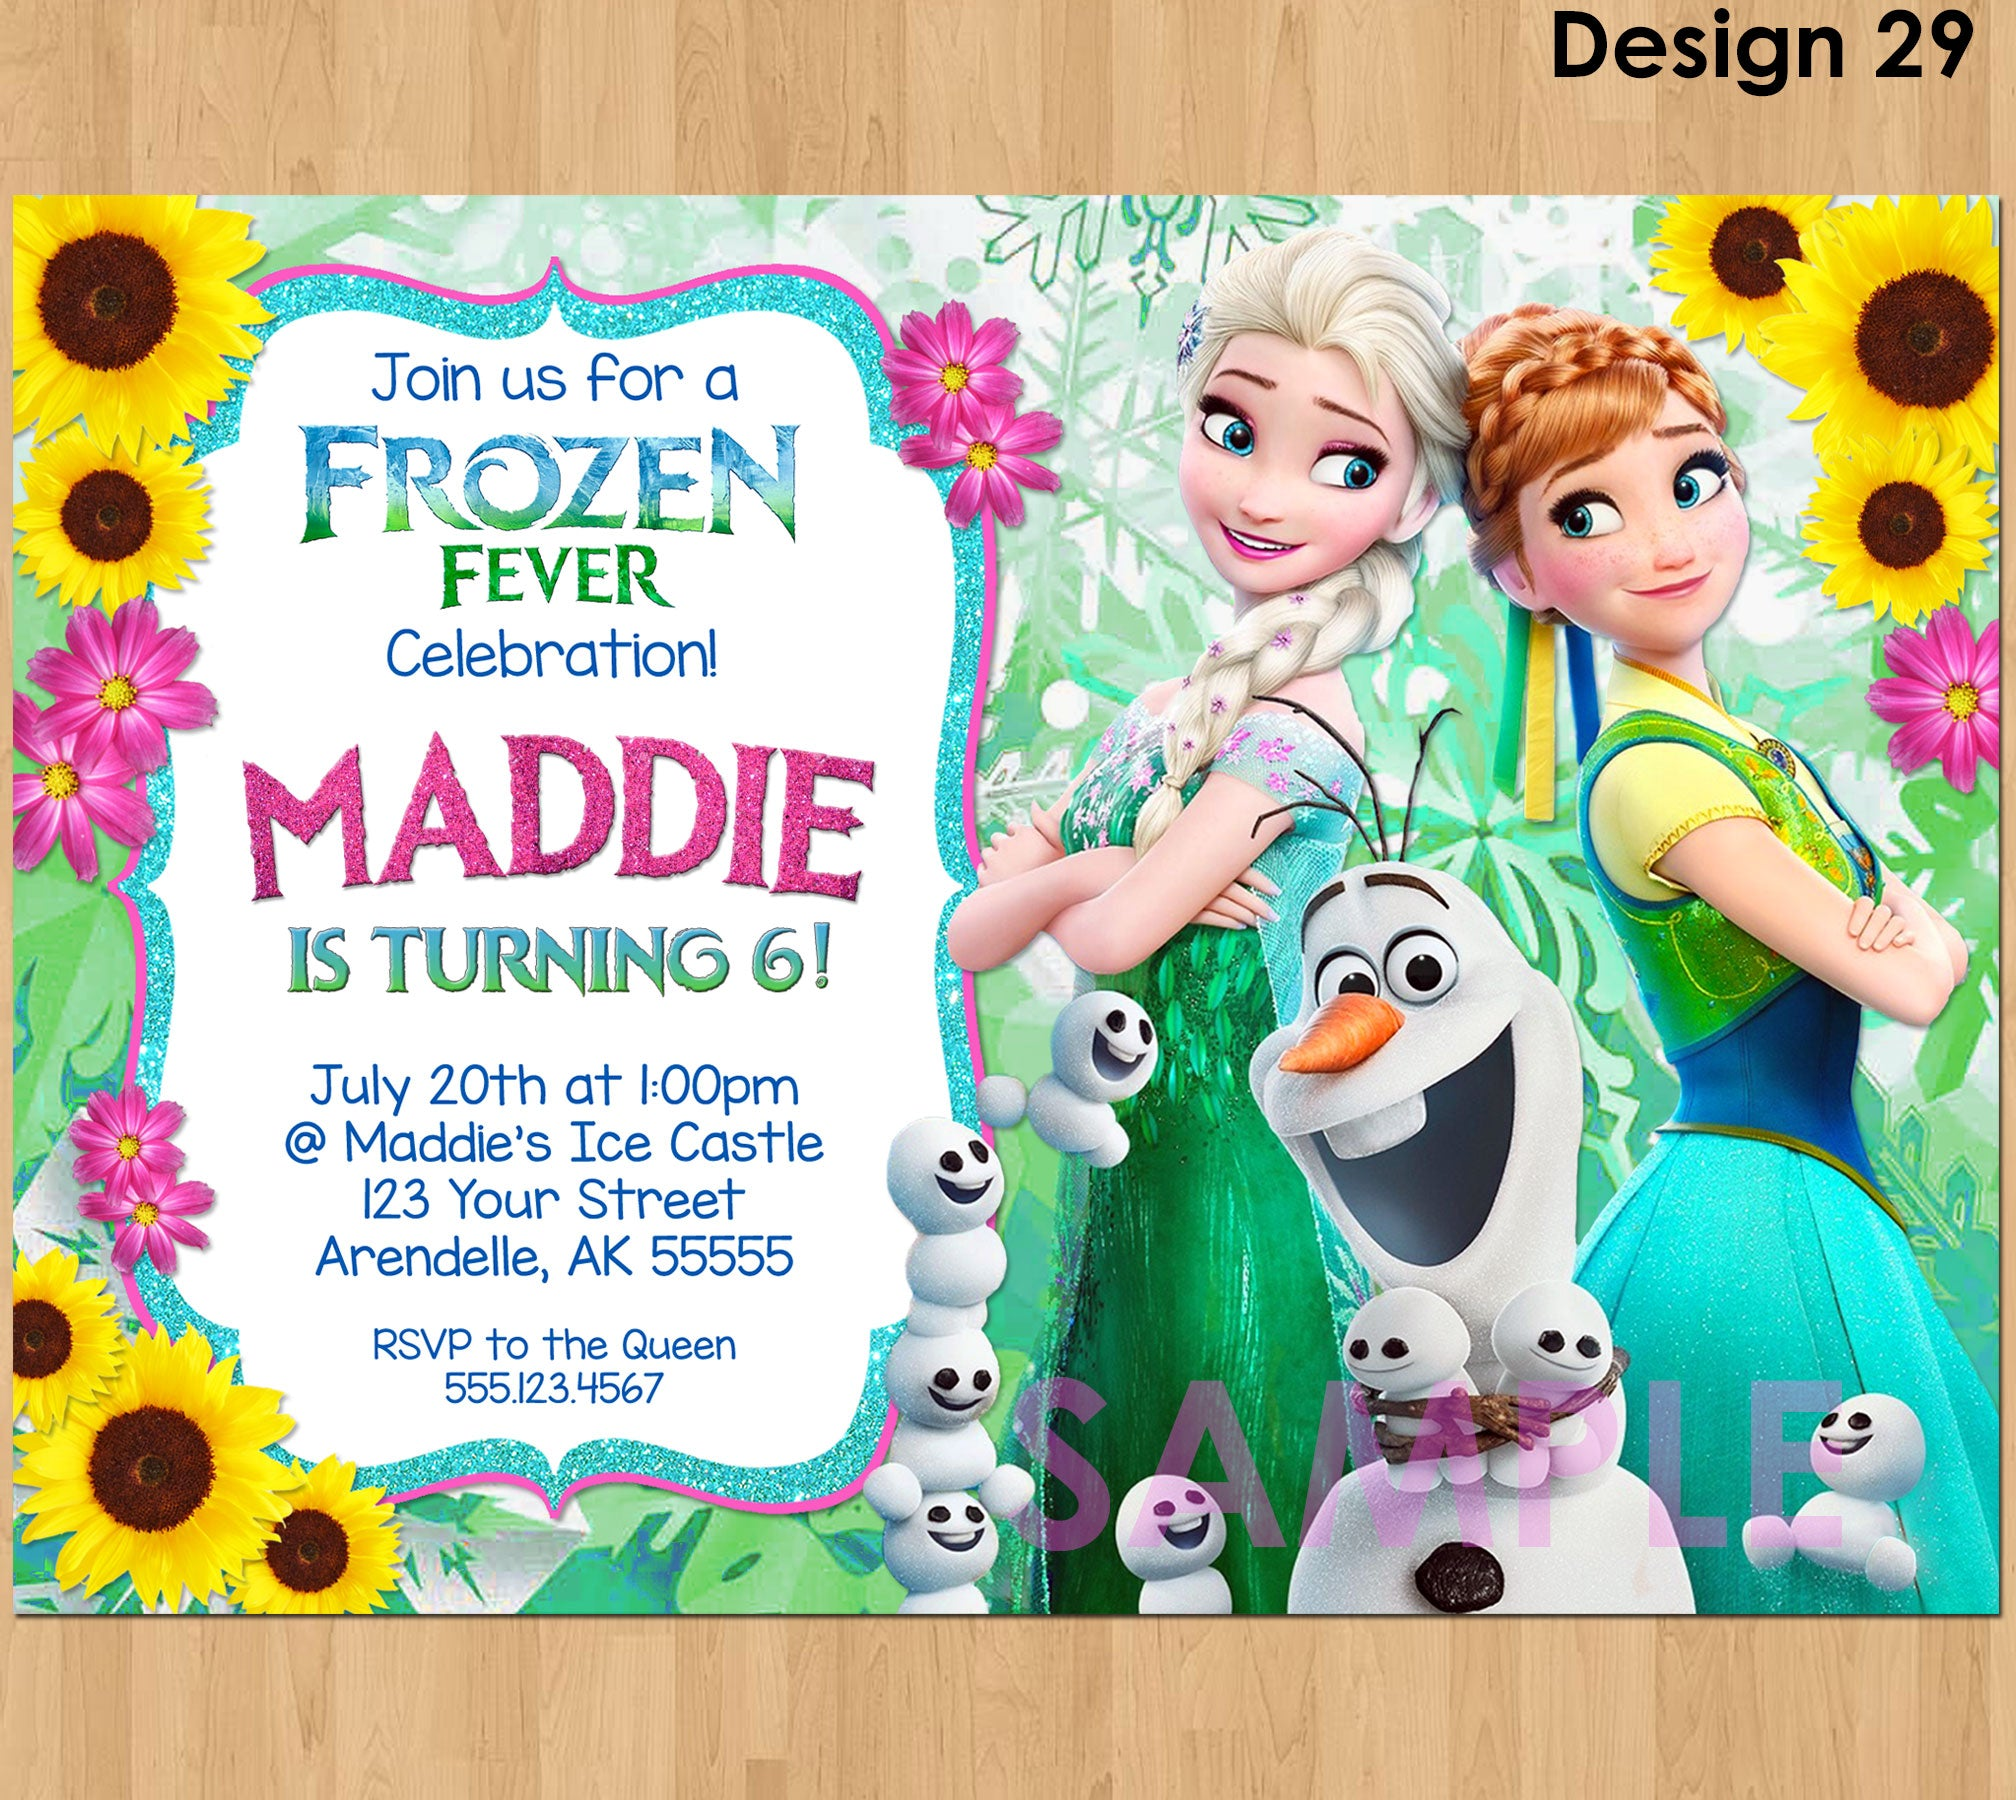 photo about Frozen Invitations Printable named FROZEN FEVER Invitation, Frozen Summertime Invitation, Frozen Fever Snowgies, Frozen Fever Birthday Invitation, Frozen Fever Invite, Olaf Elsa